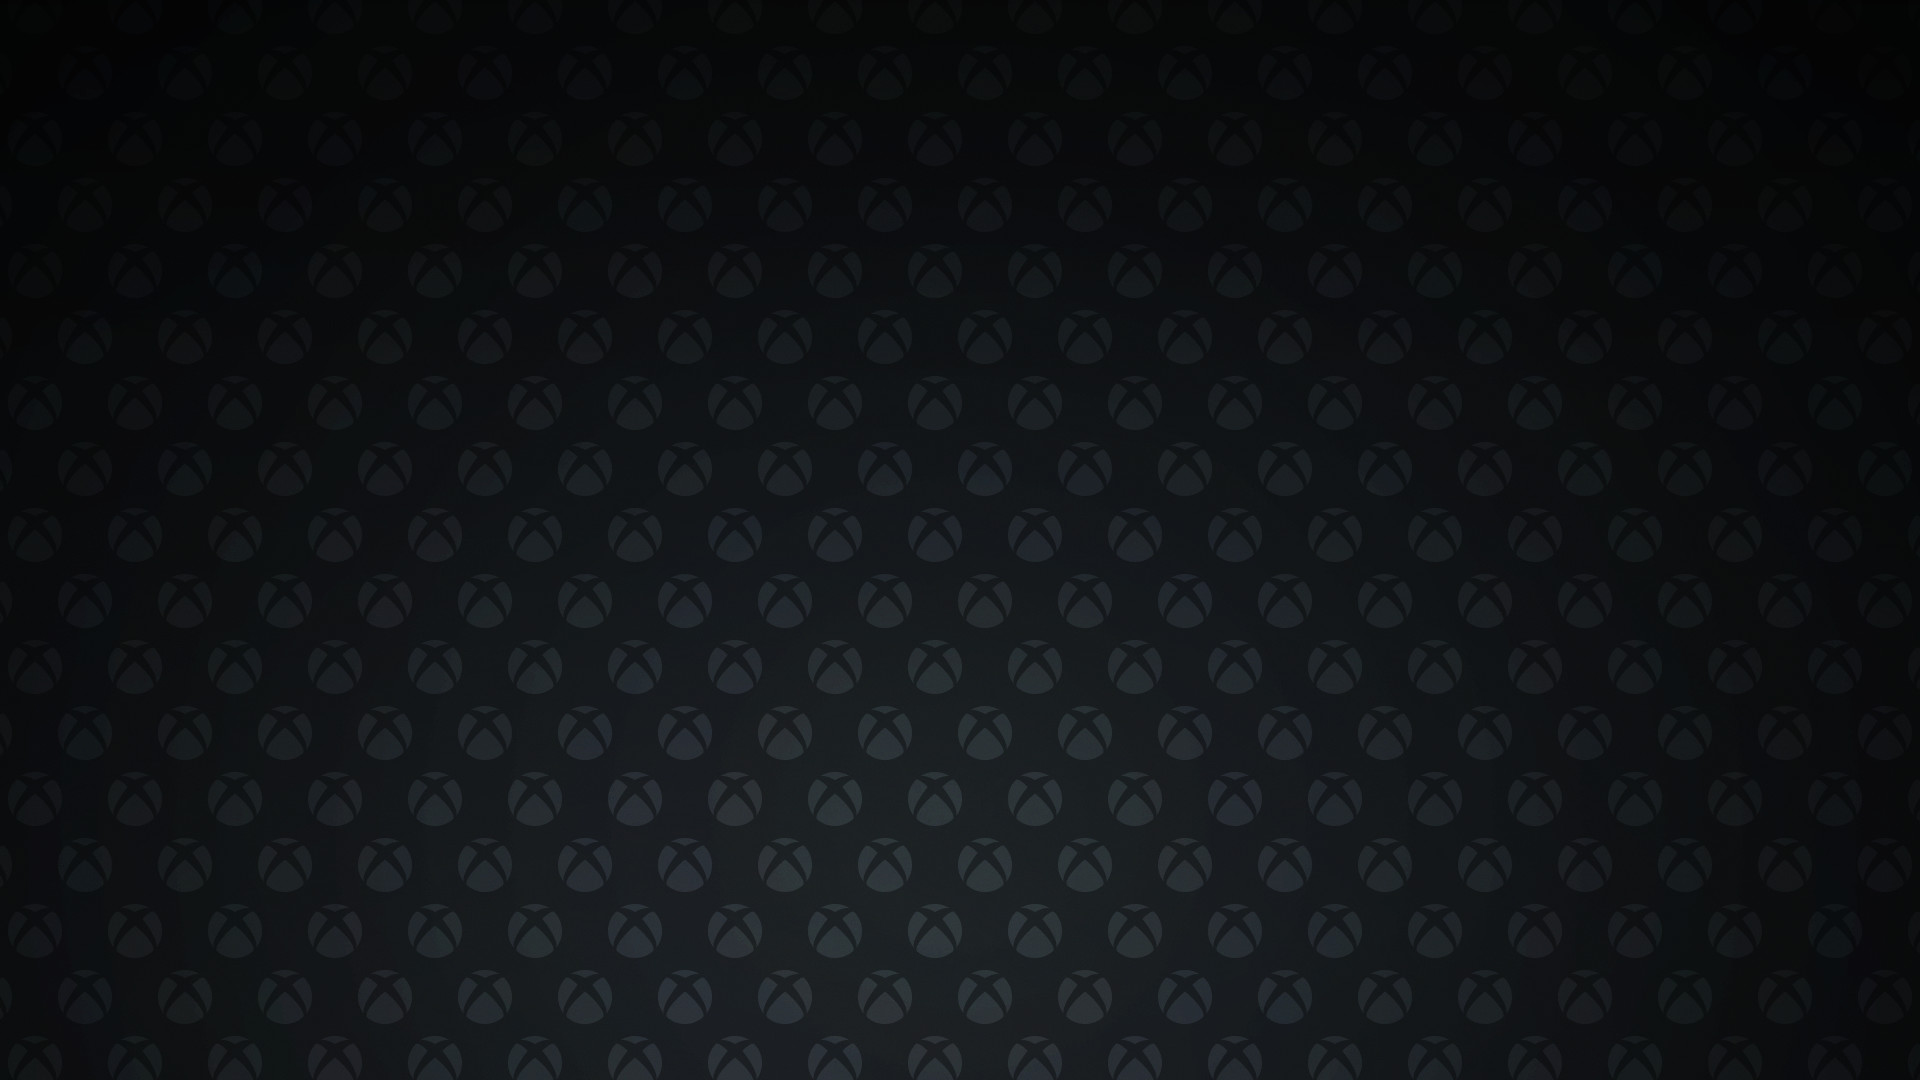 Xbox Backgrounds